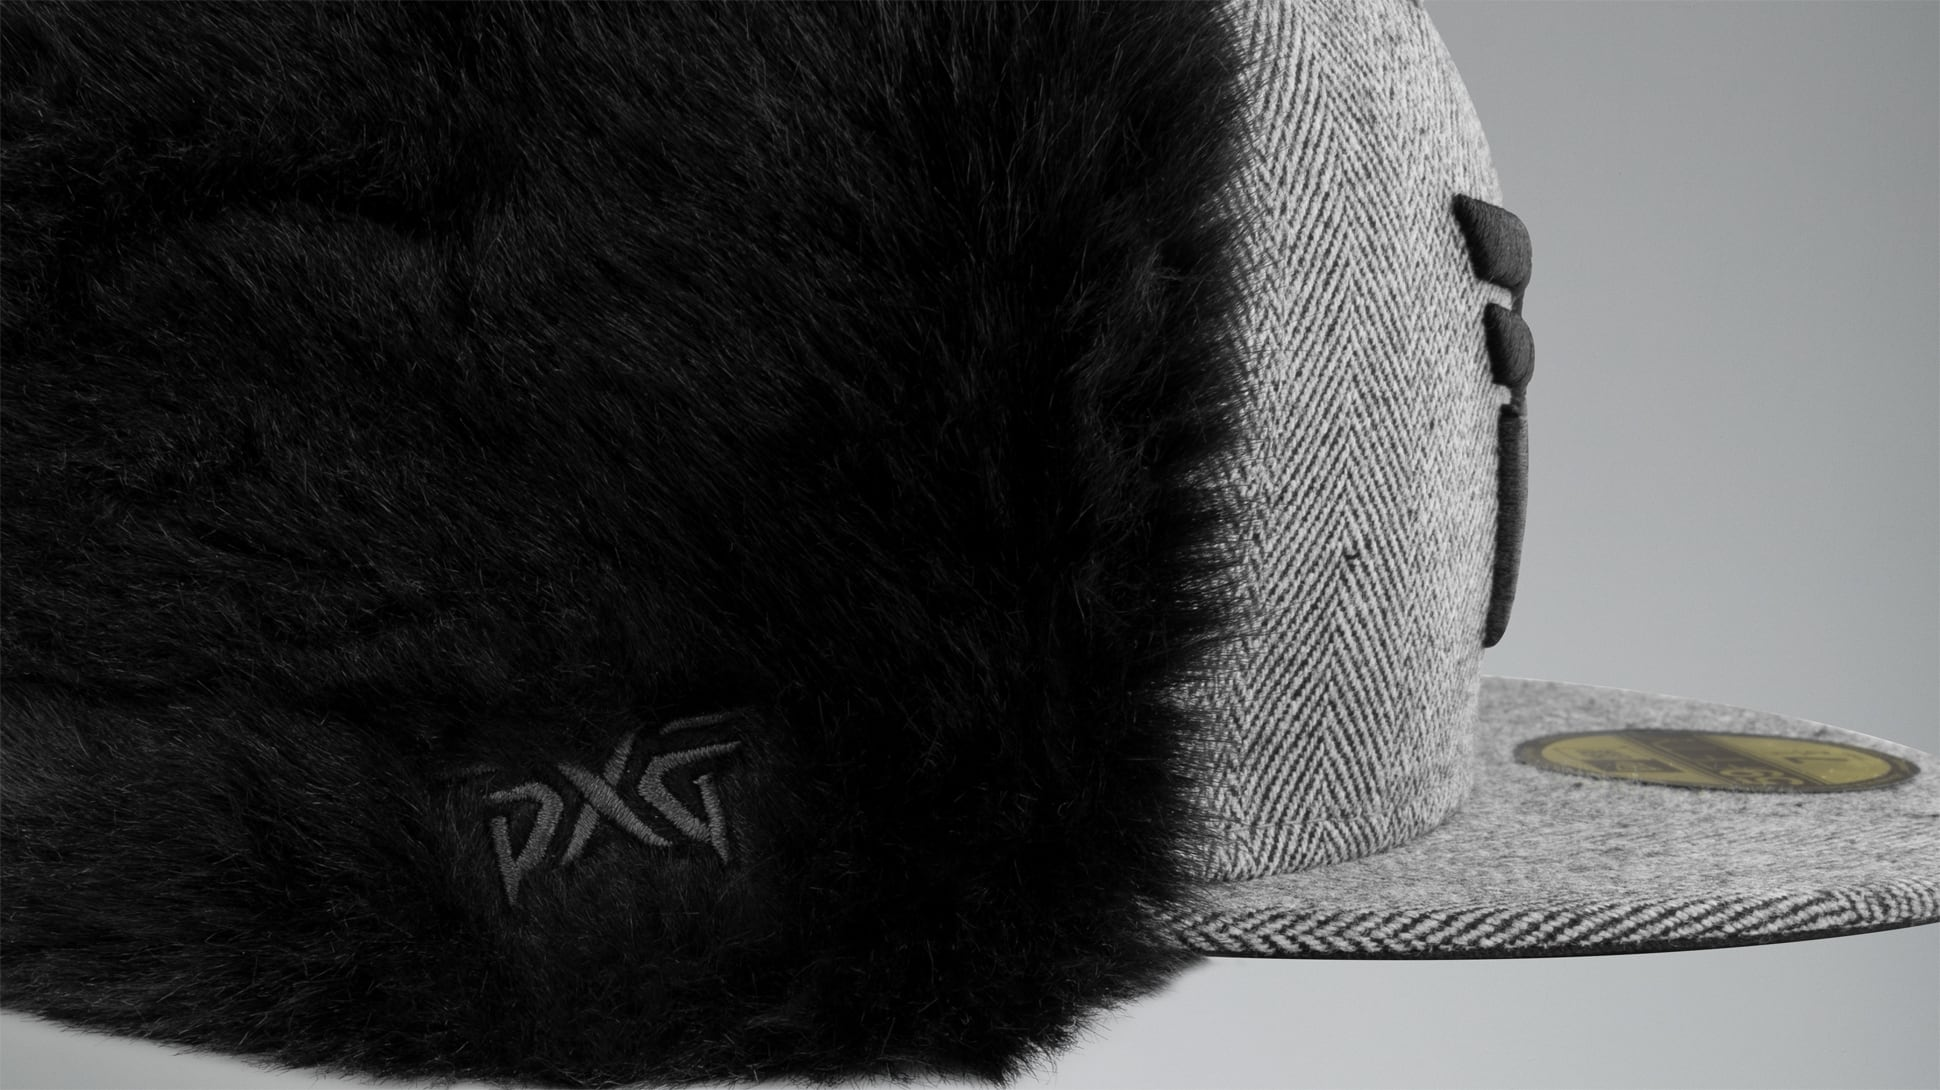 Dog Ear 59FIFTY Fitted Cap Image 8